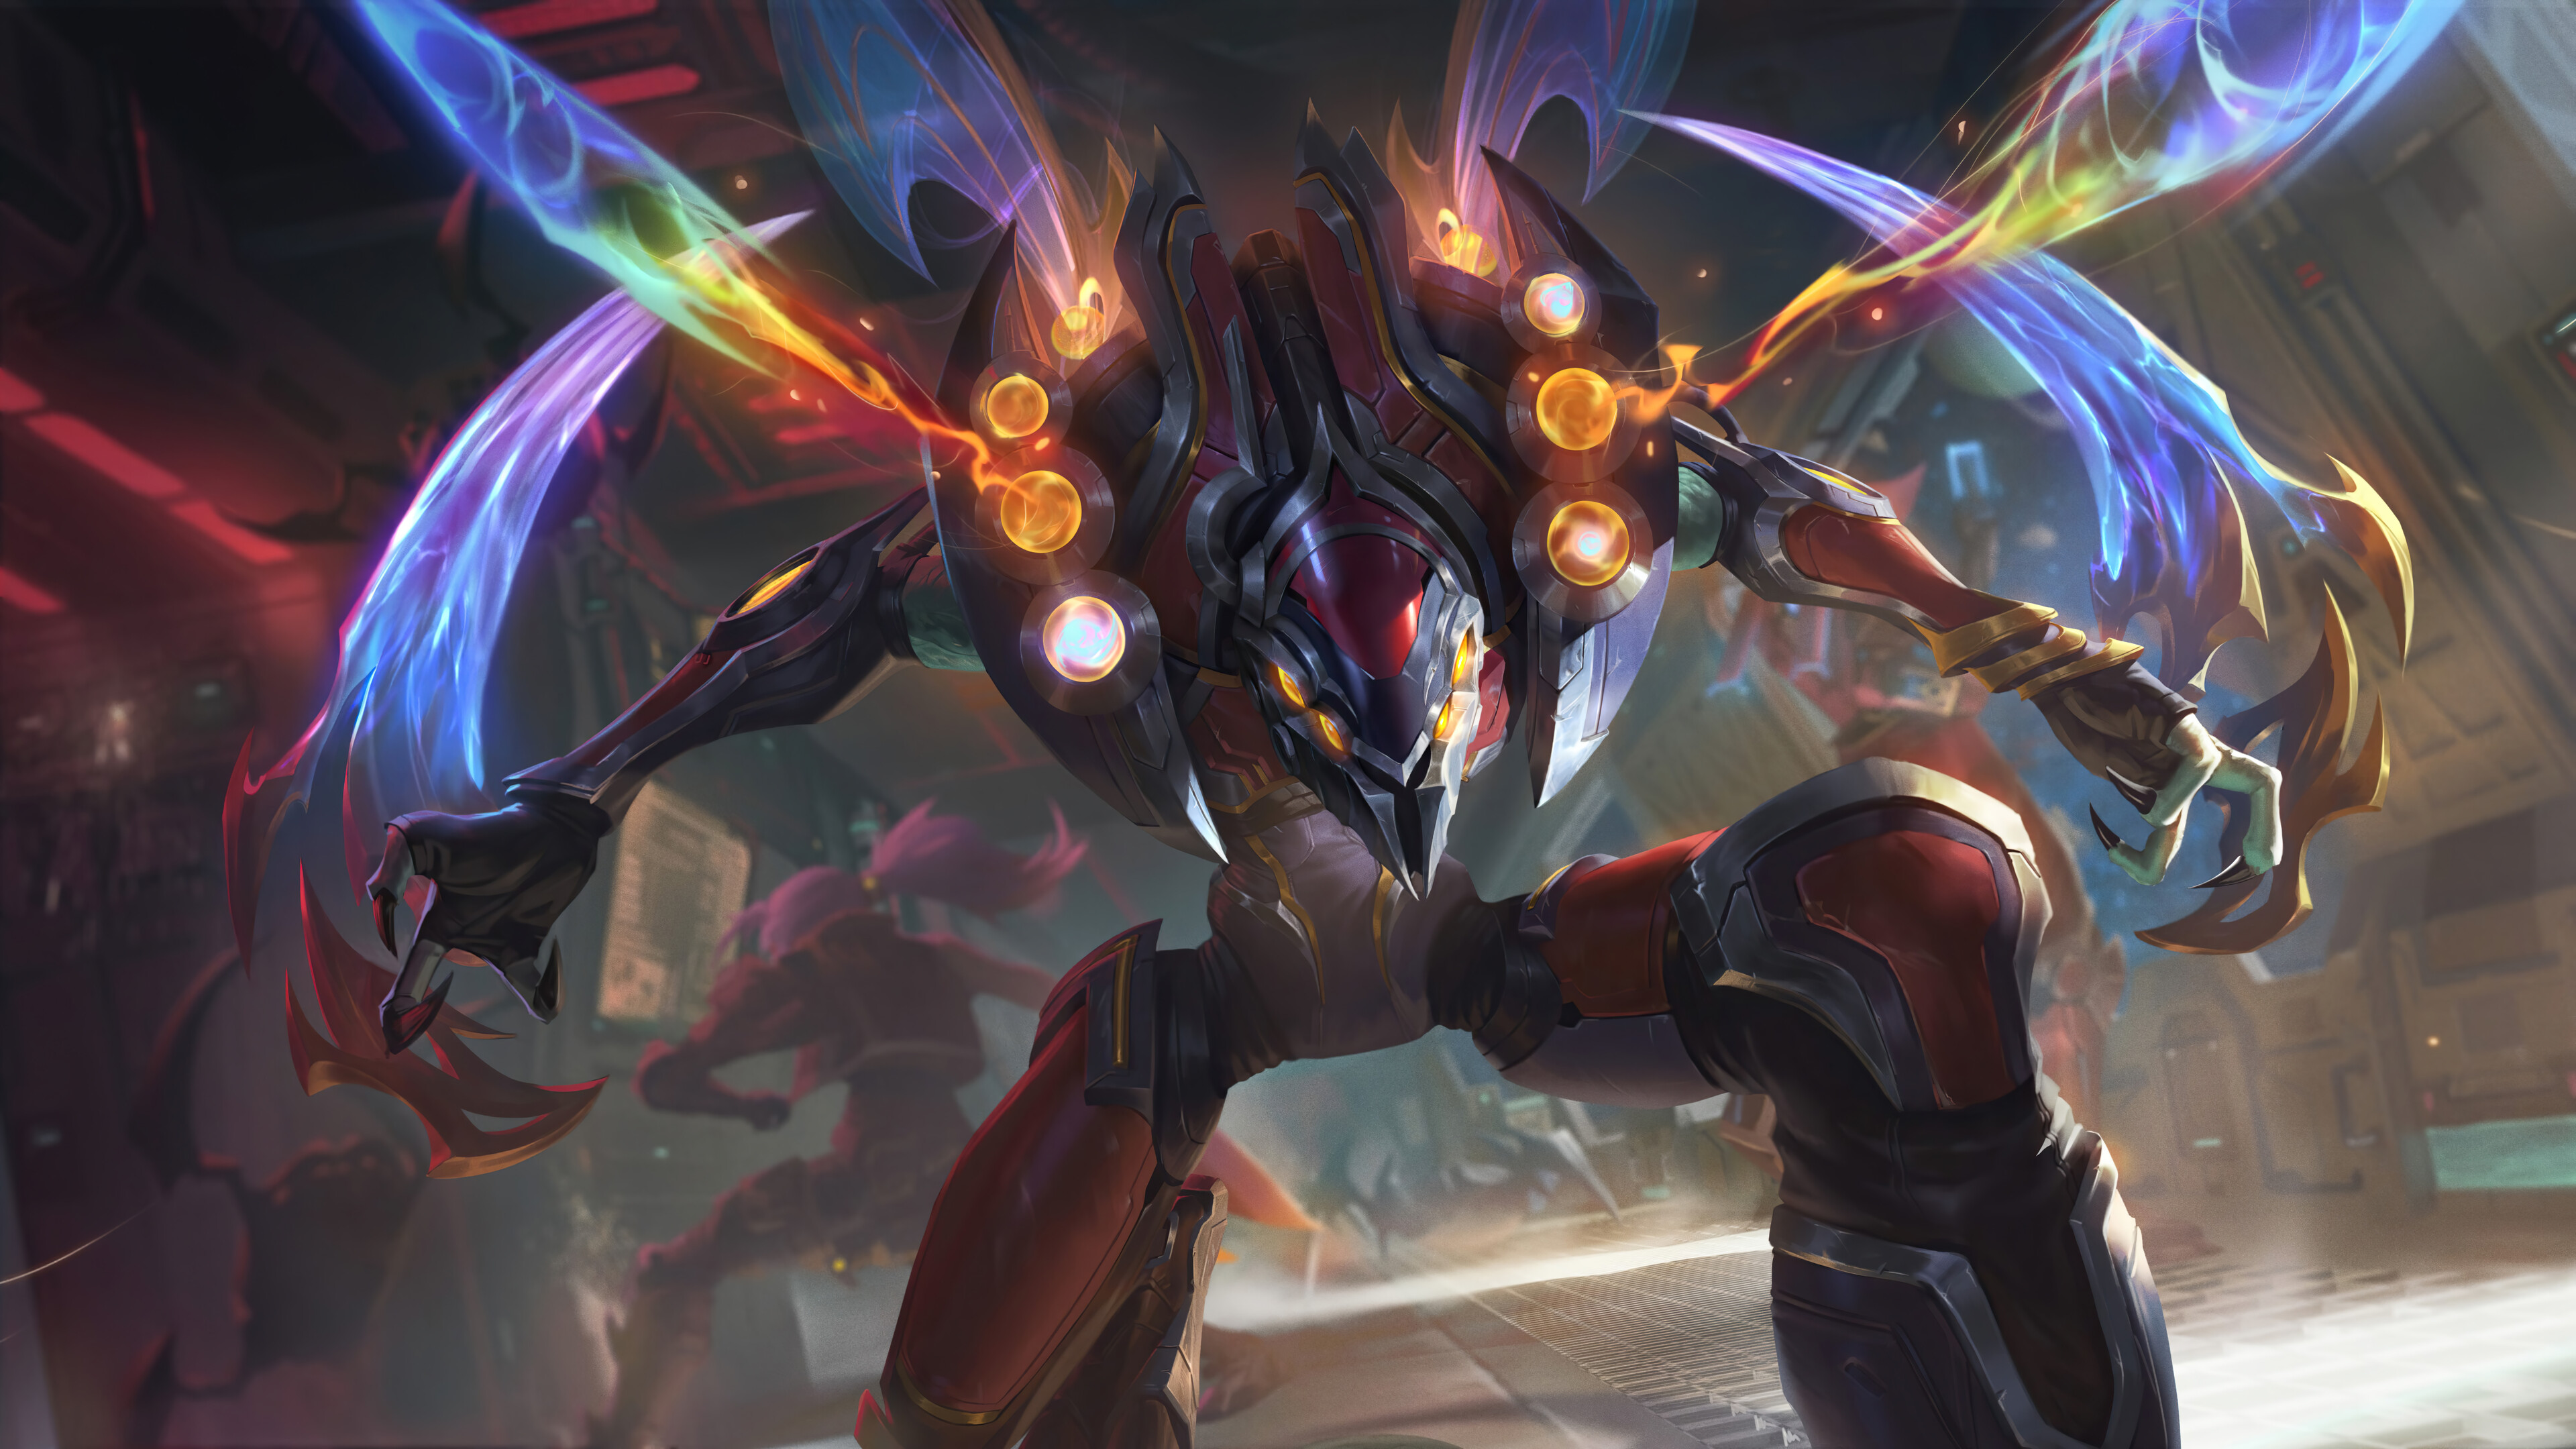 General 3840x2160 Kha'Zix The Odyssey League of Legends Riot Games space galaxy Guardians of the Galaxy